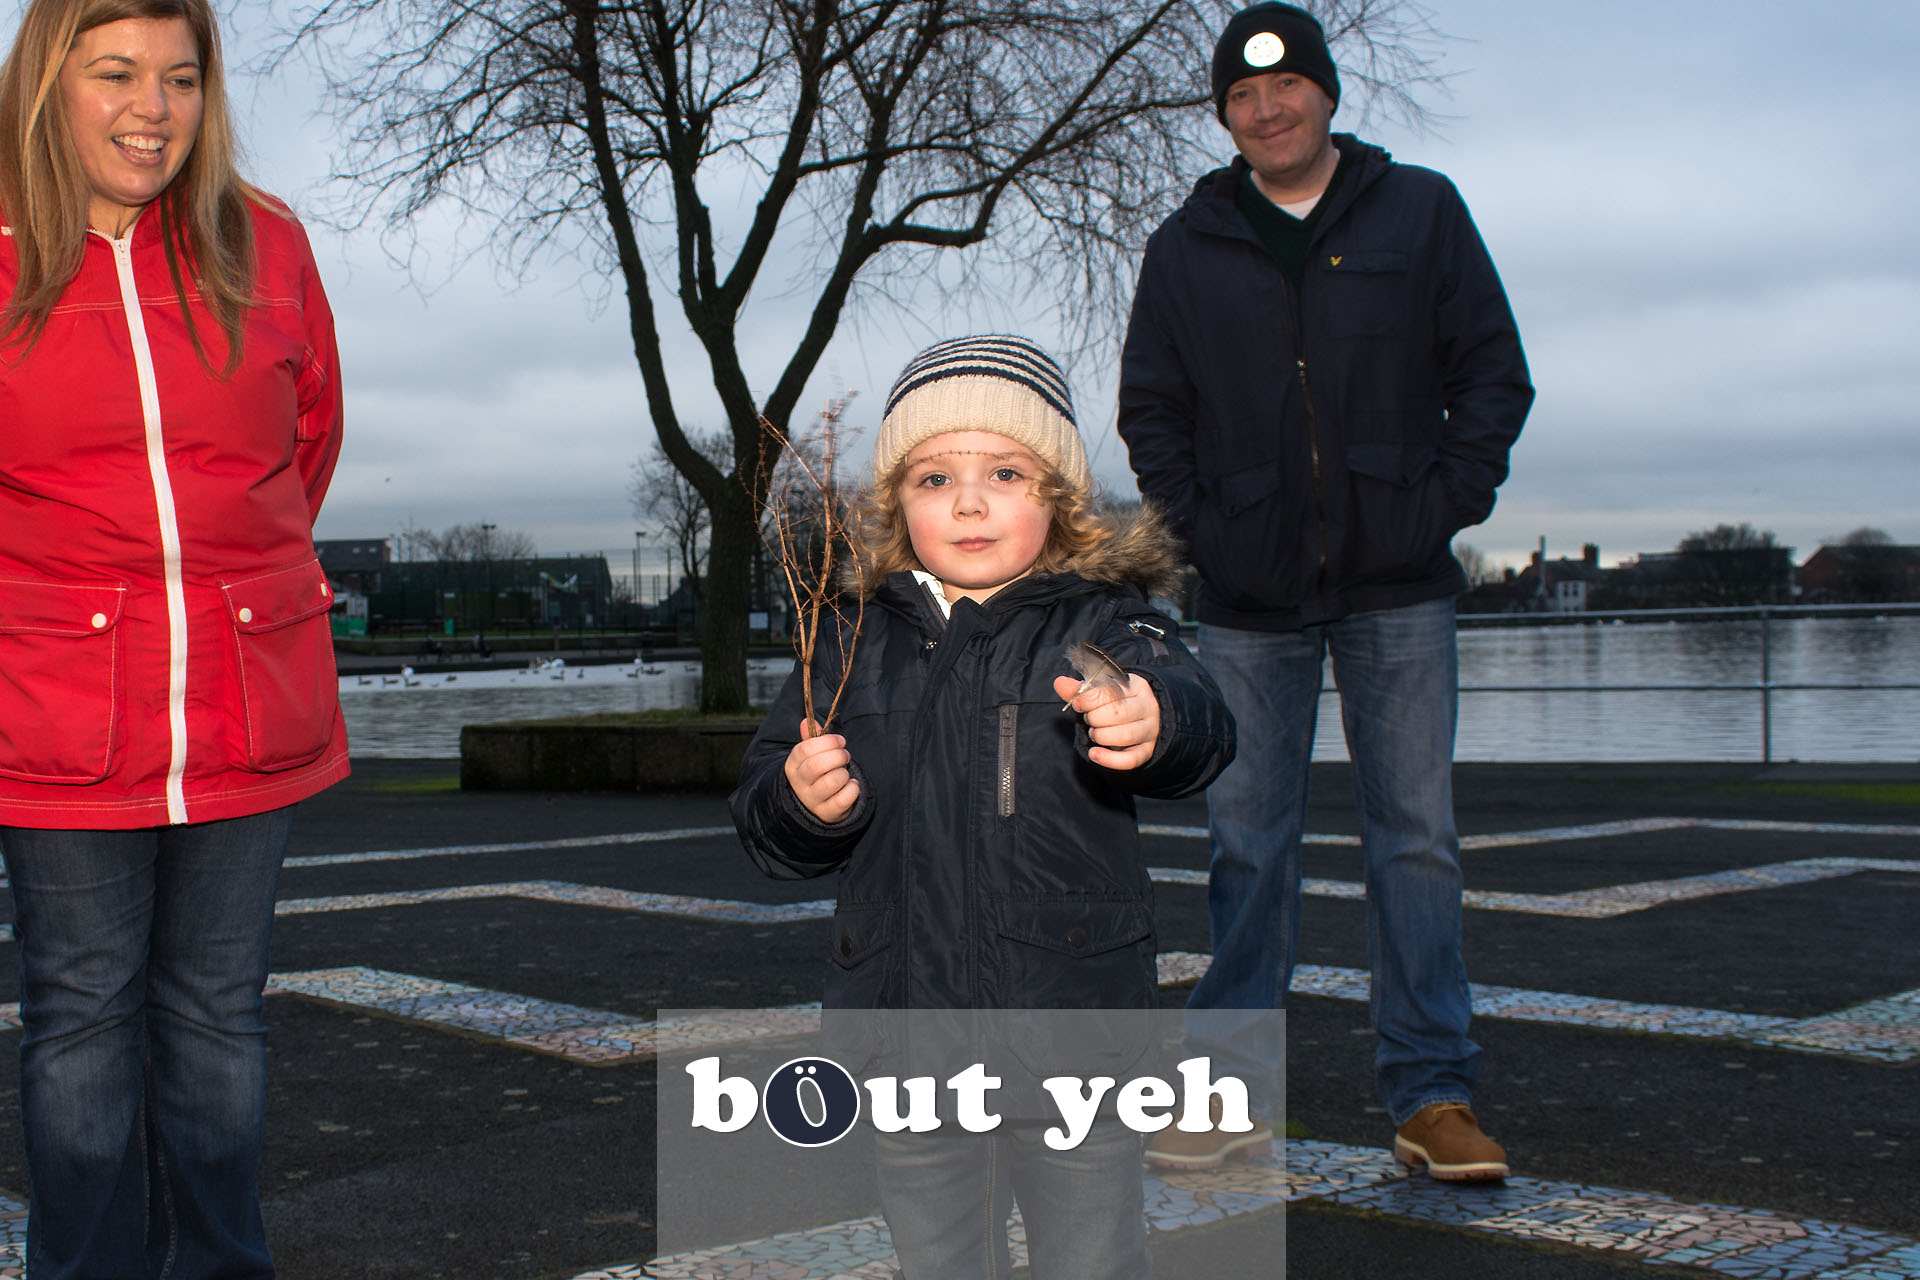 Young boy with parents, Waterworks, Belfast, Northern Ireland - bout yeh photographers Belfast photo 3957.